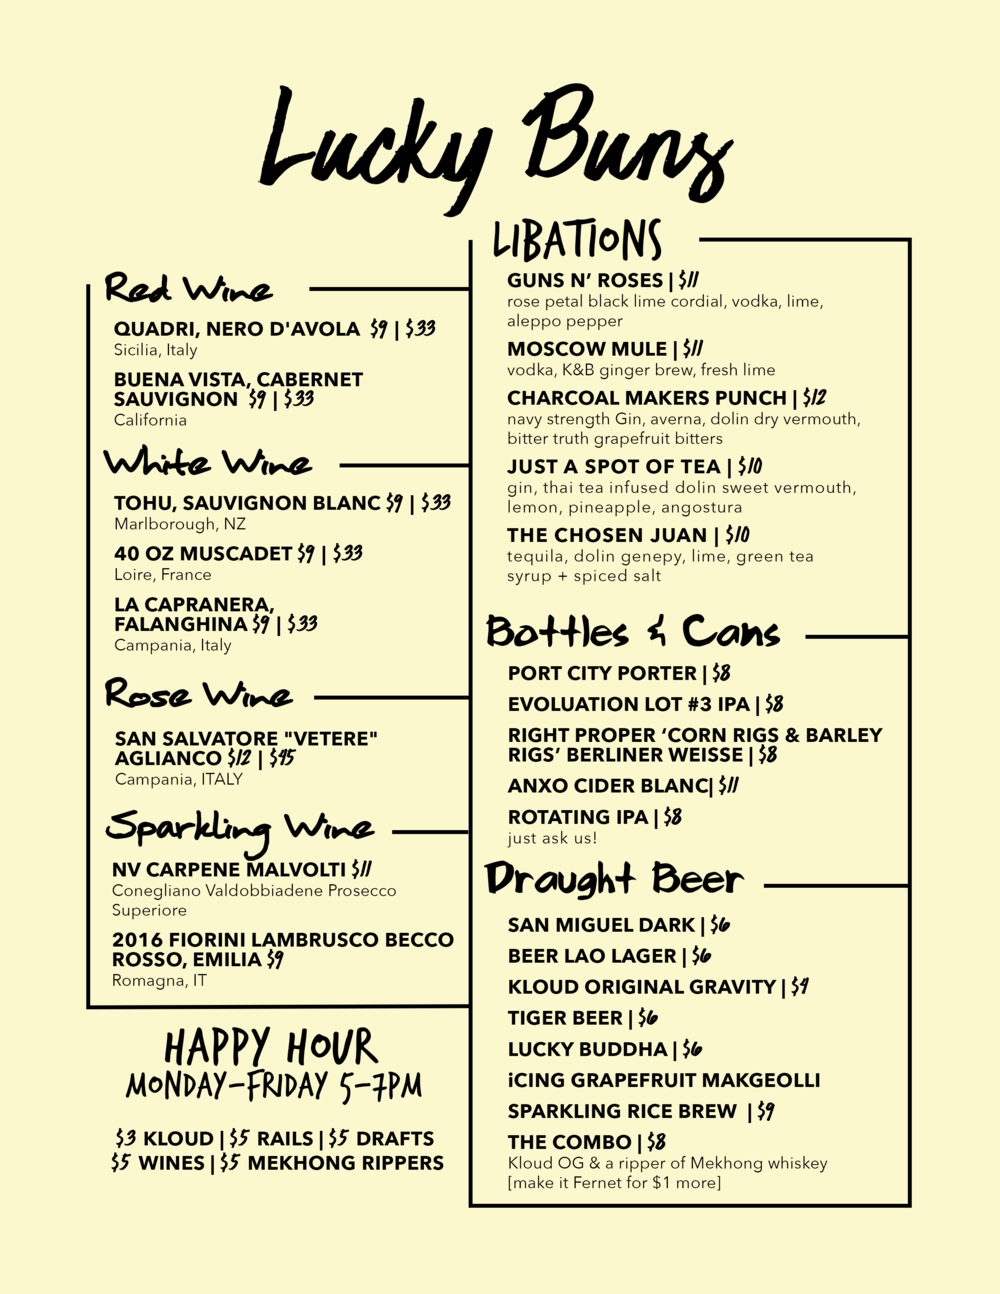 luckybuns_drinkmenu-website.png